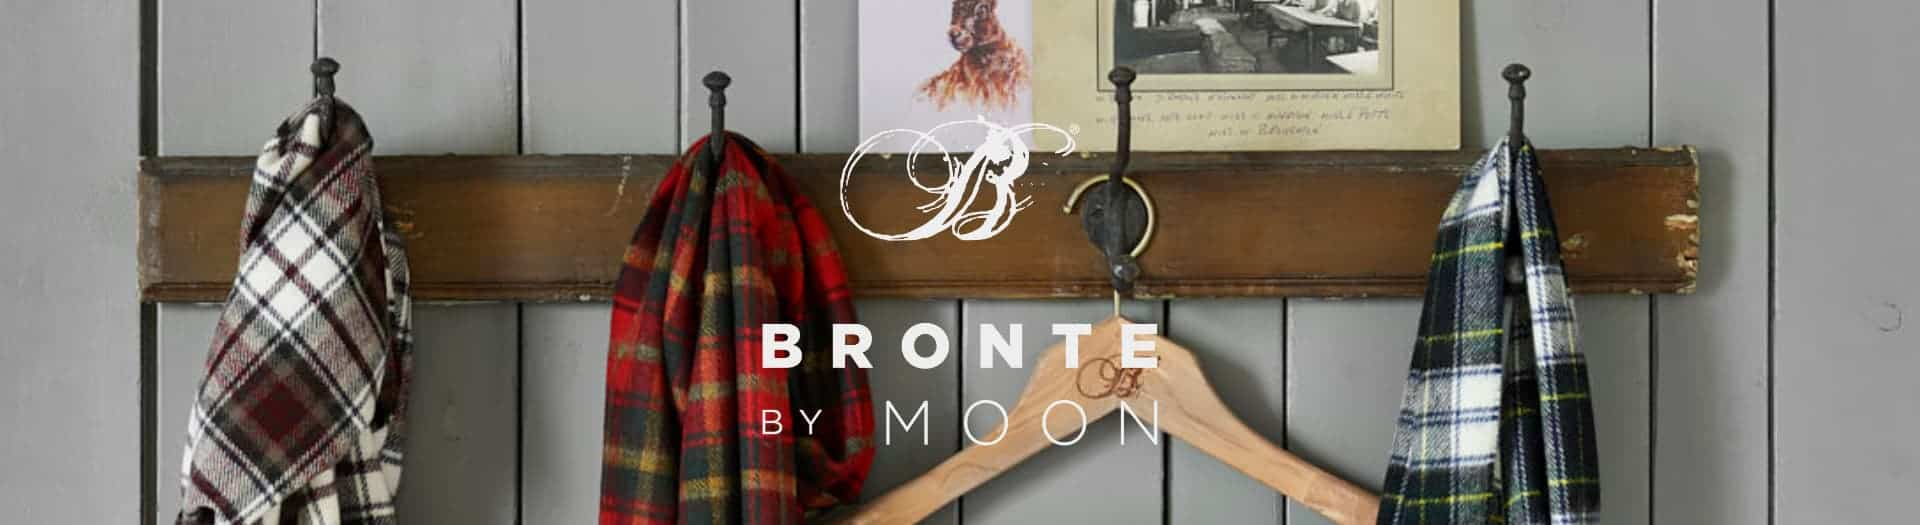 1920x525 bronte by moon header with logo